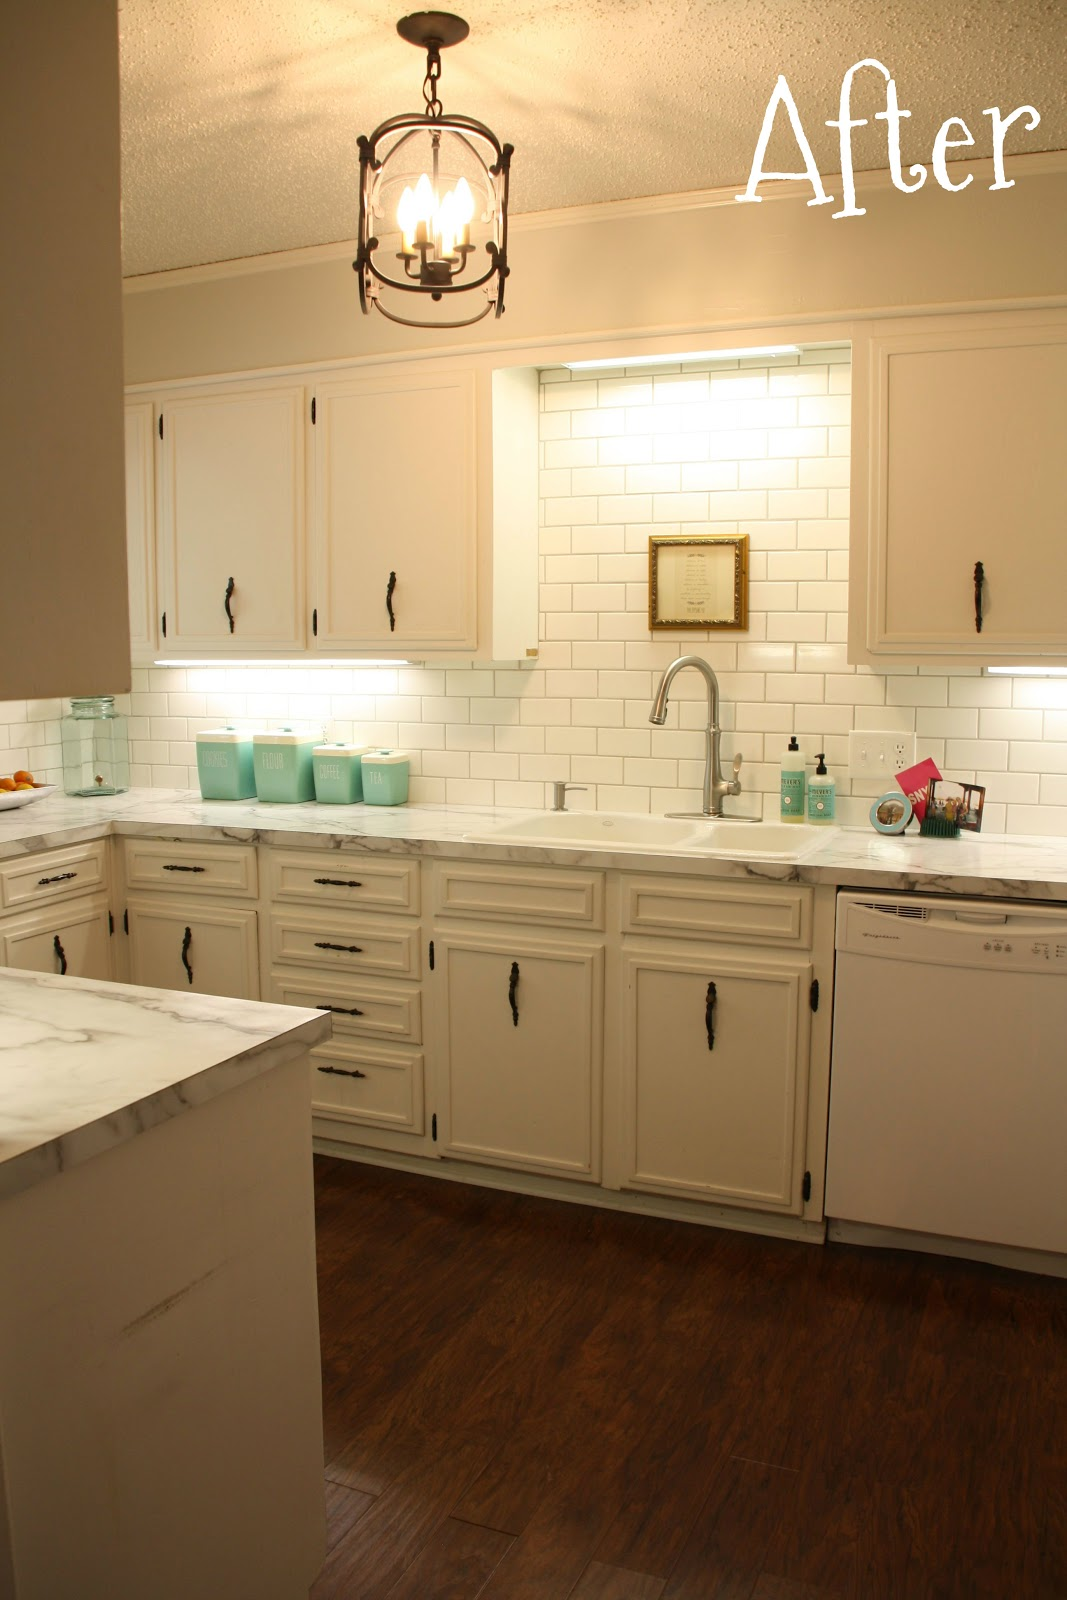 laminate kitchen countertops best design websites calcutta marble marbles and the great on pinterest